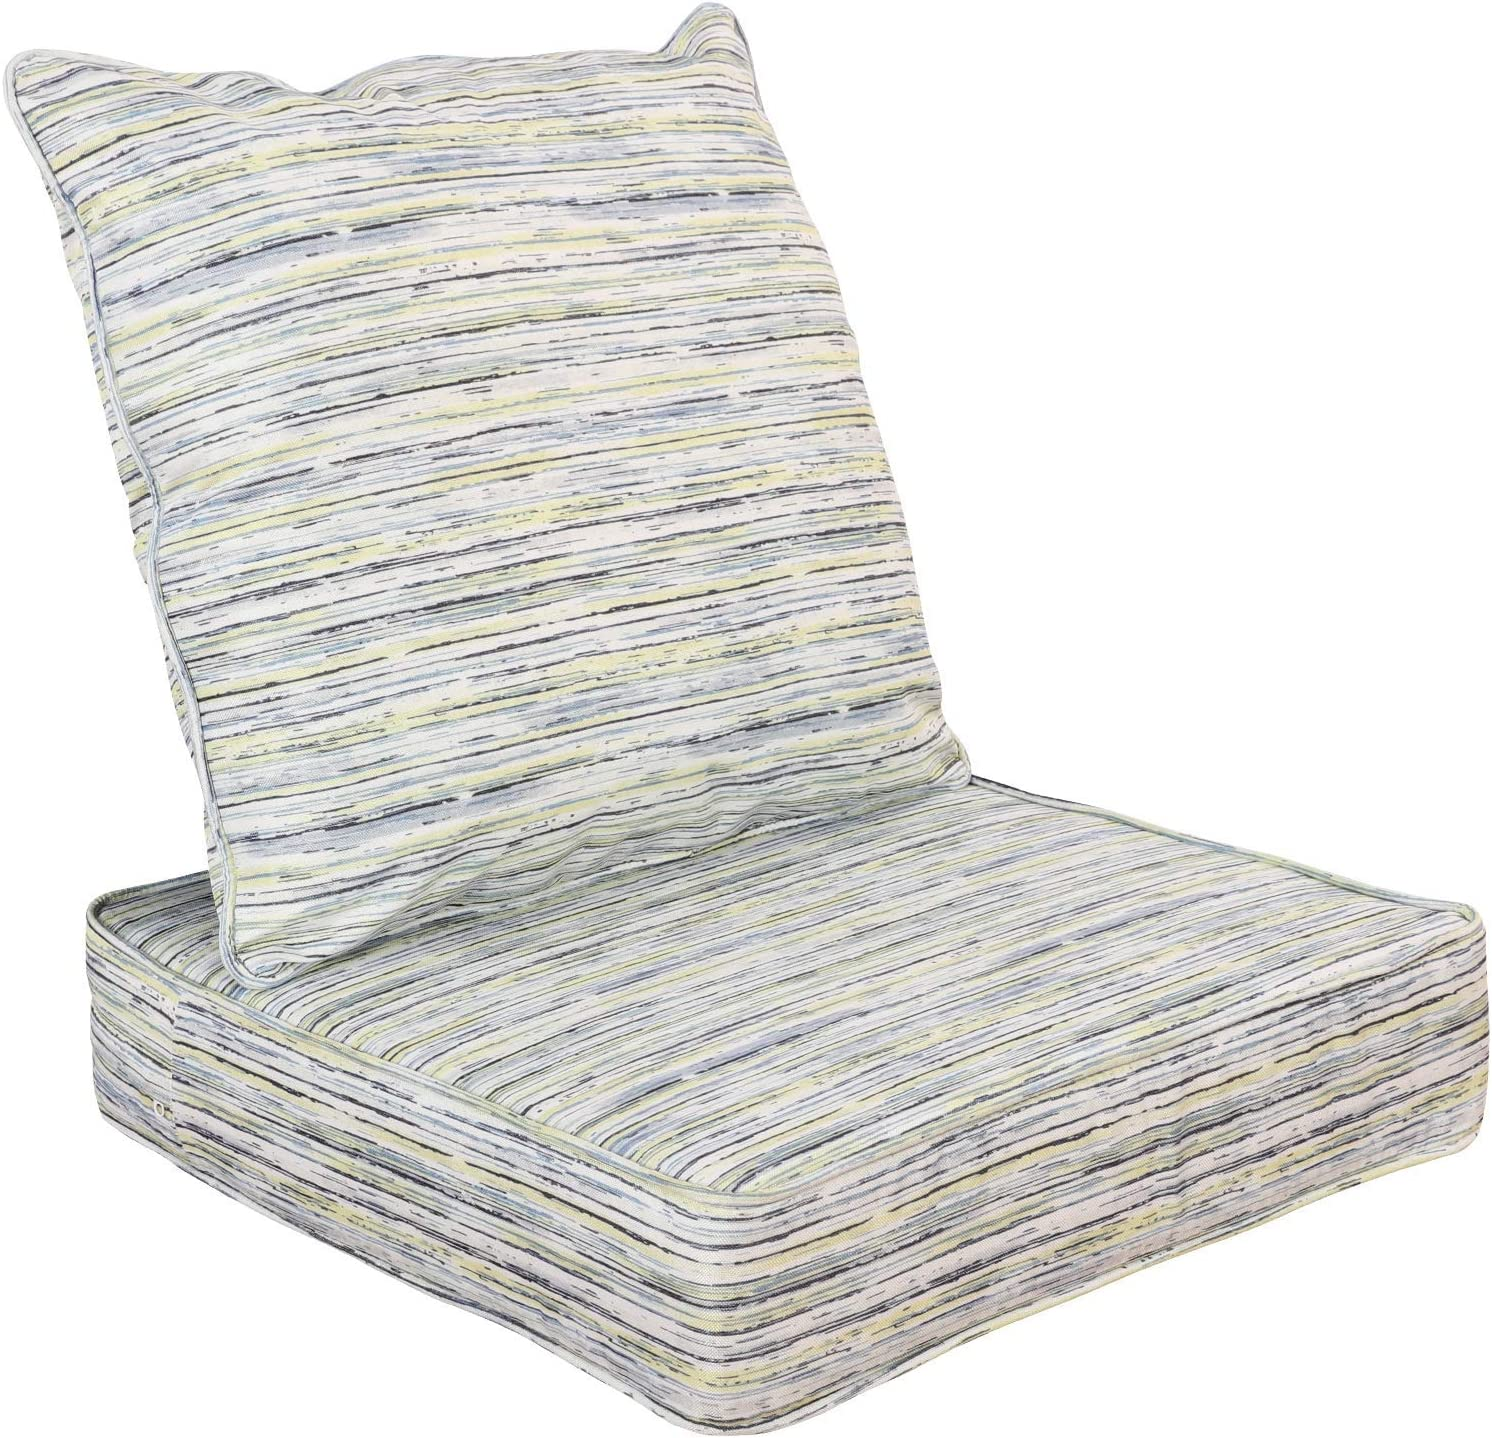 WOTU Outdoor/Indoor Deep Seat Chair Cushions Set ,Deep Seat and Comfortable Back Cushion Large Size Replacement Cushion for Patio Furniture (Grey)